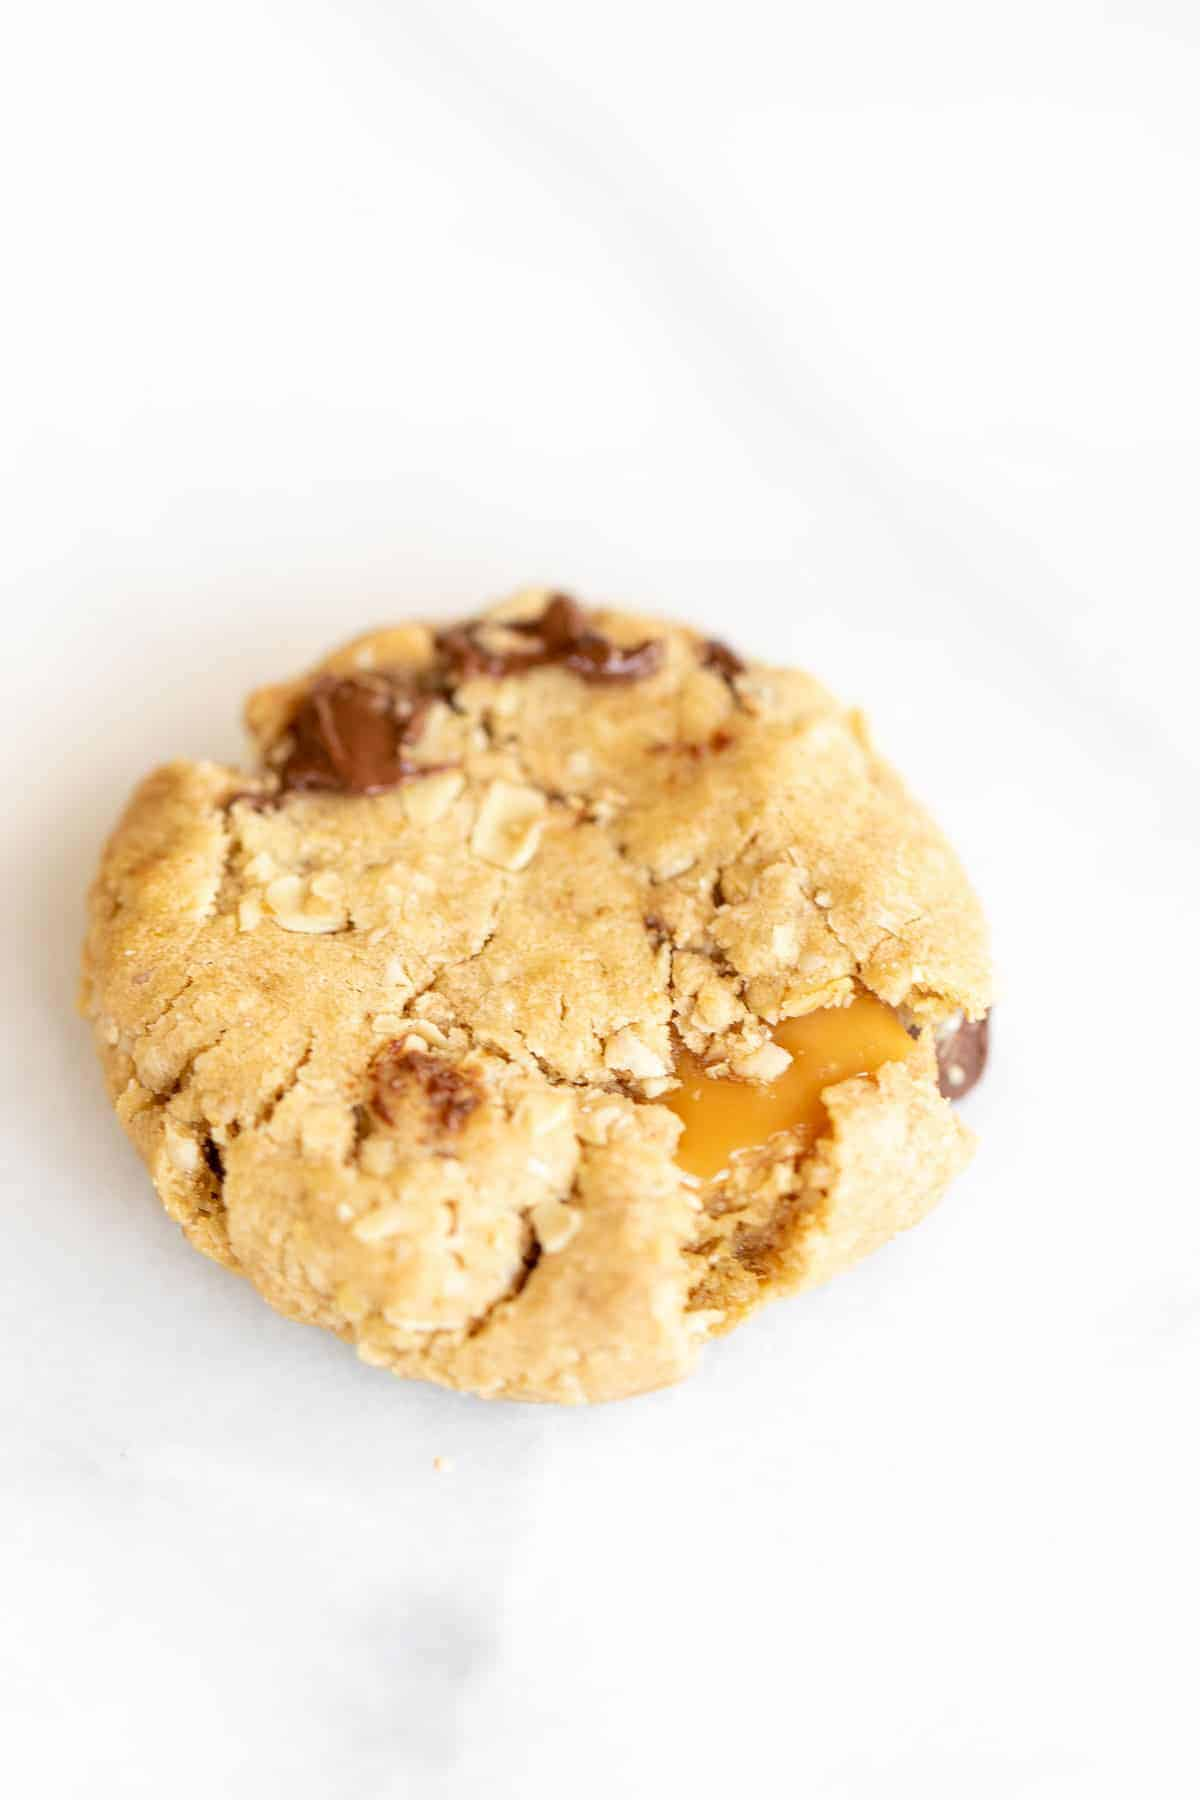 brown sugar oatmeal cookie with chocolate chips stuff with caramel